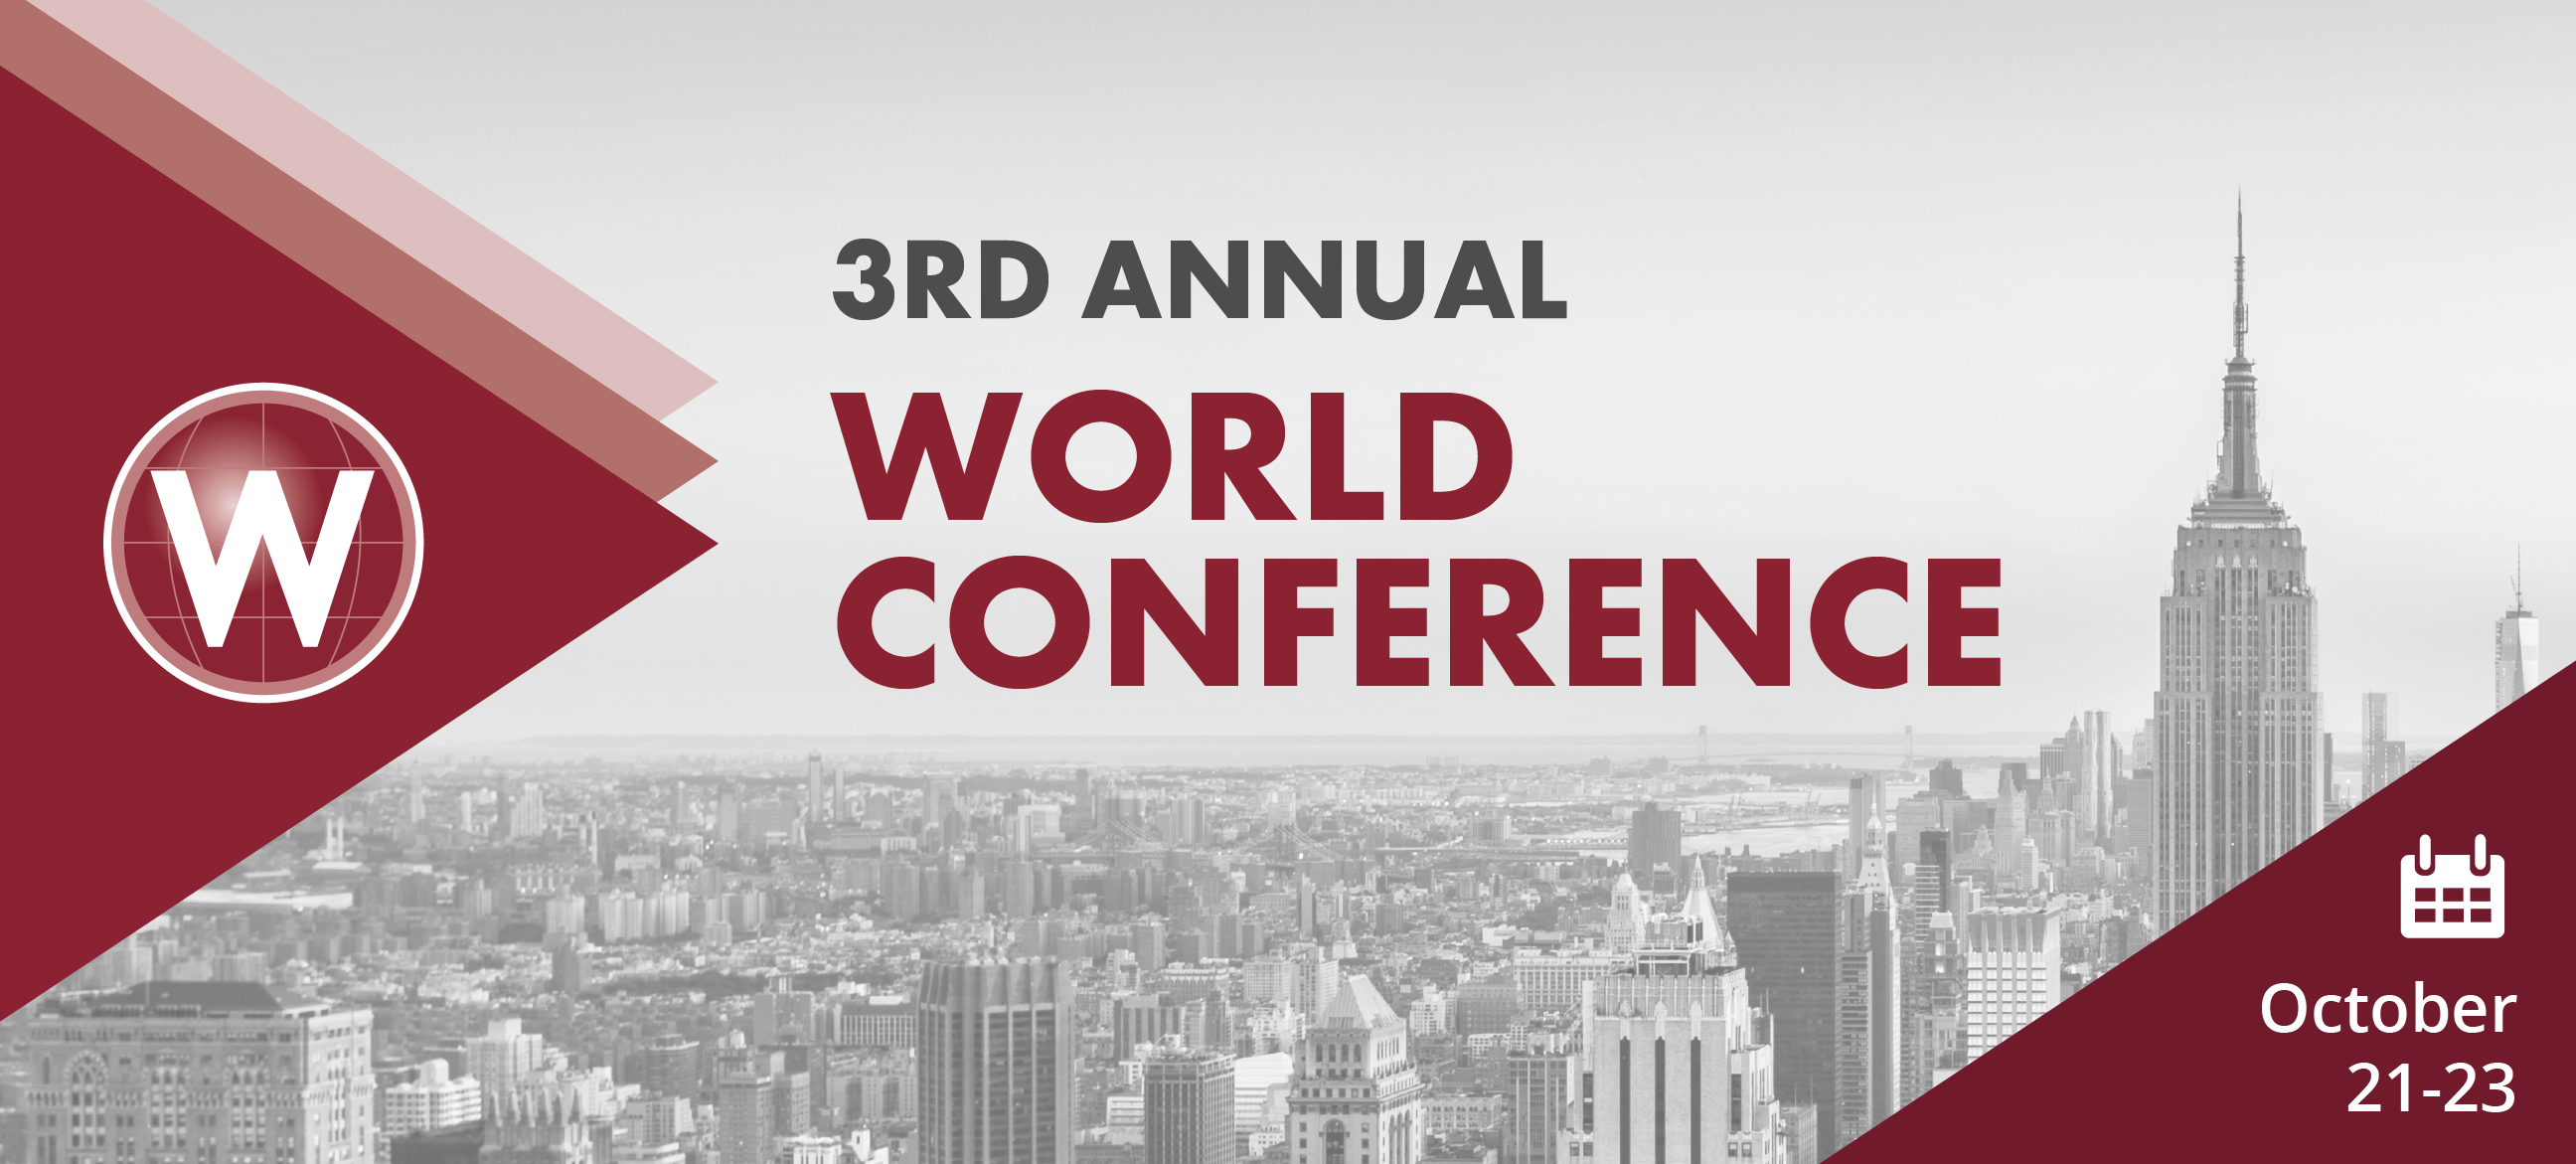 3rd Annual World Conference